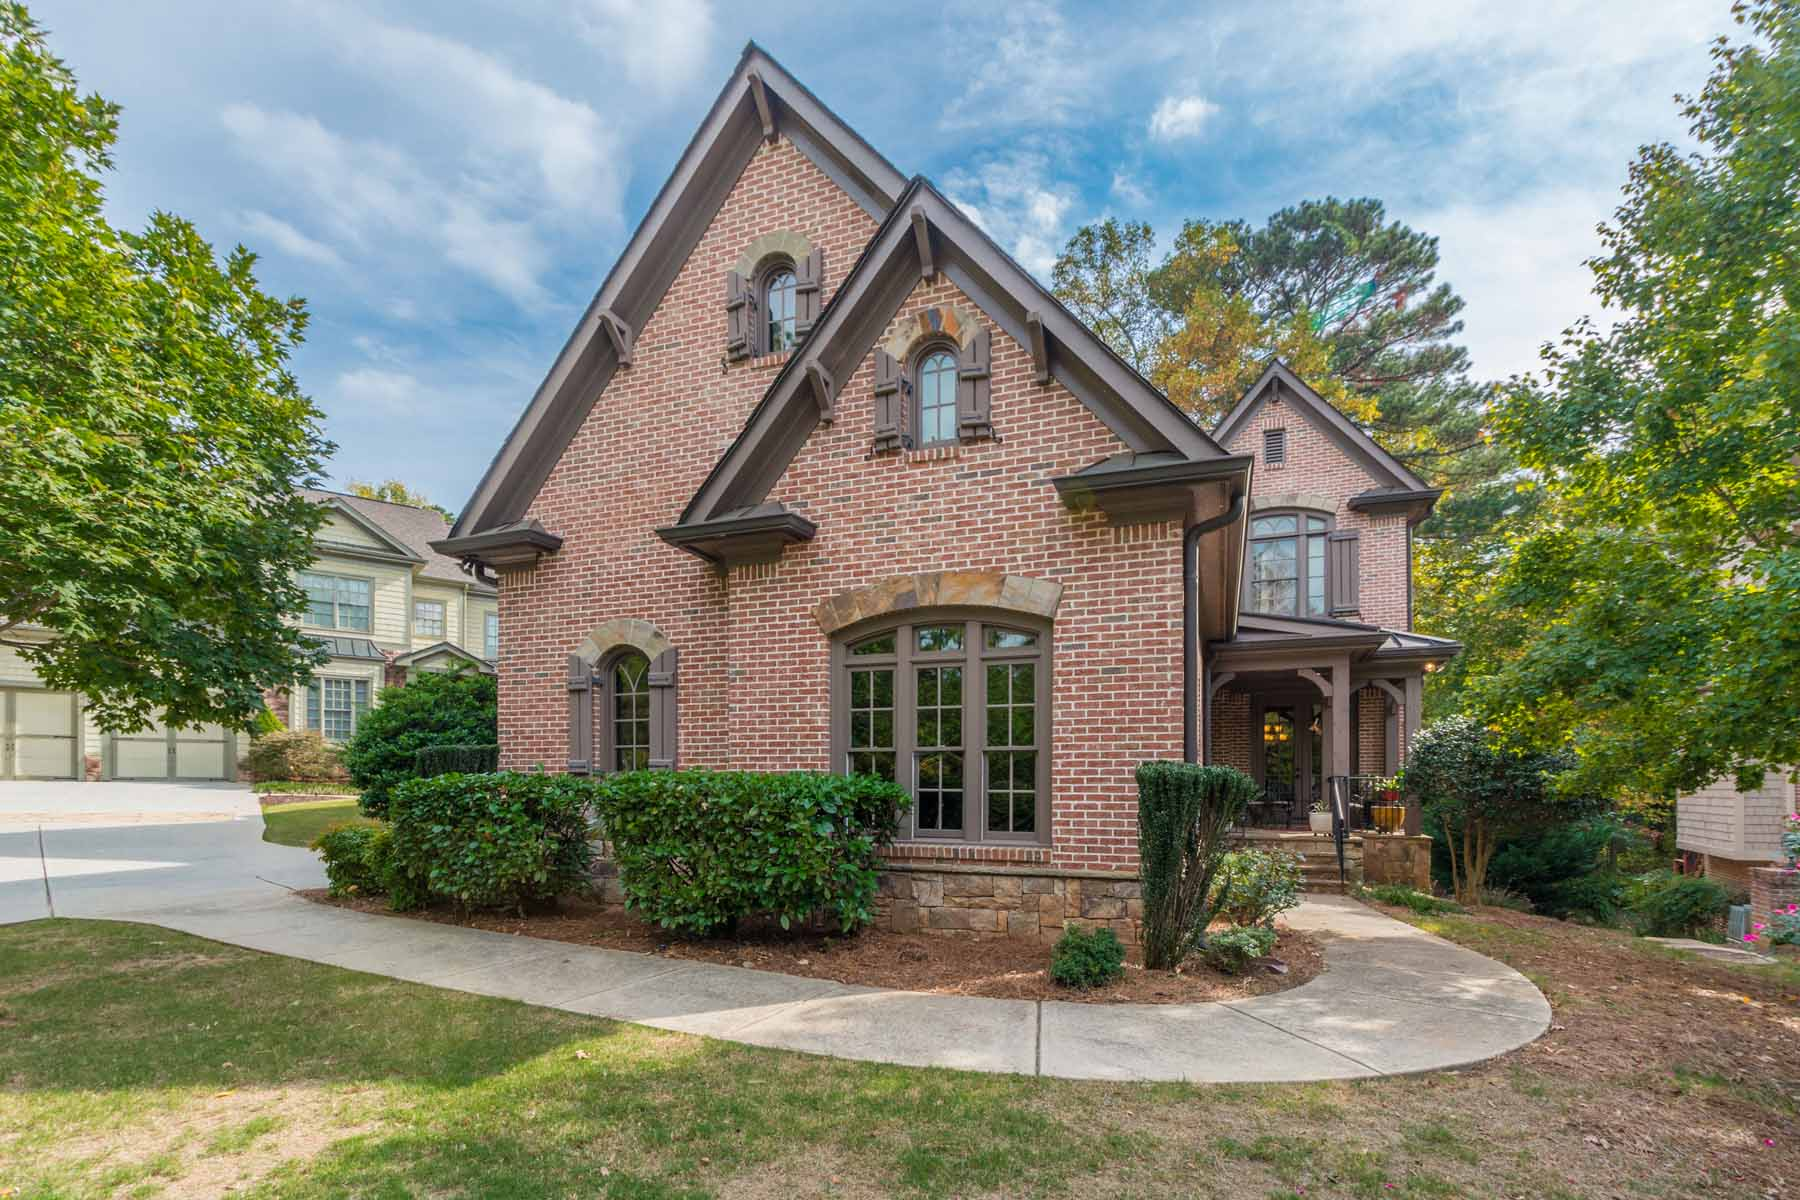 단독 가정 주택 용 매매 에 Stunning Brick Home In Windward On Golf Course Lot 6303 Windward Parkway Alpharetta, 조지아, 30005 미국